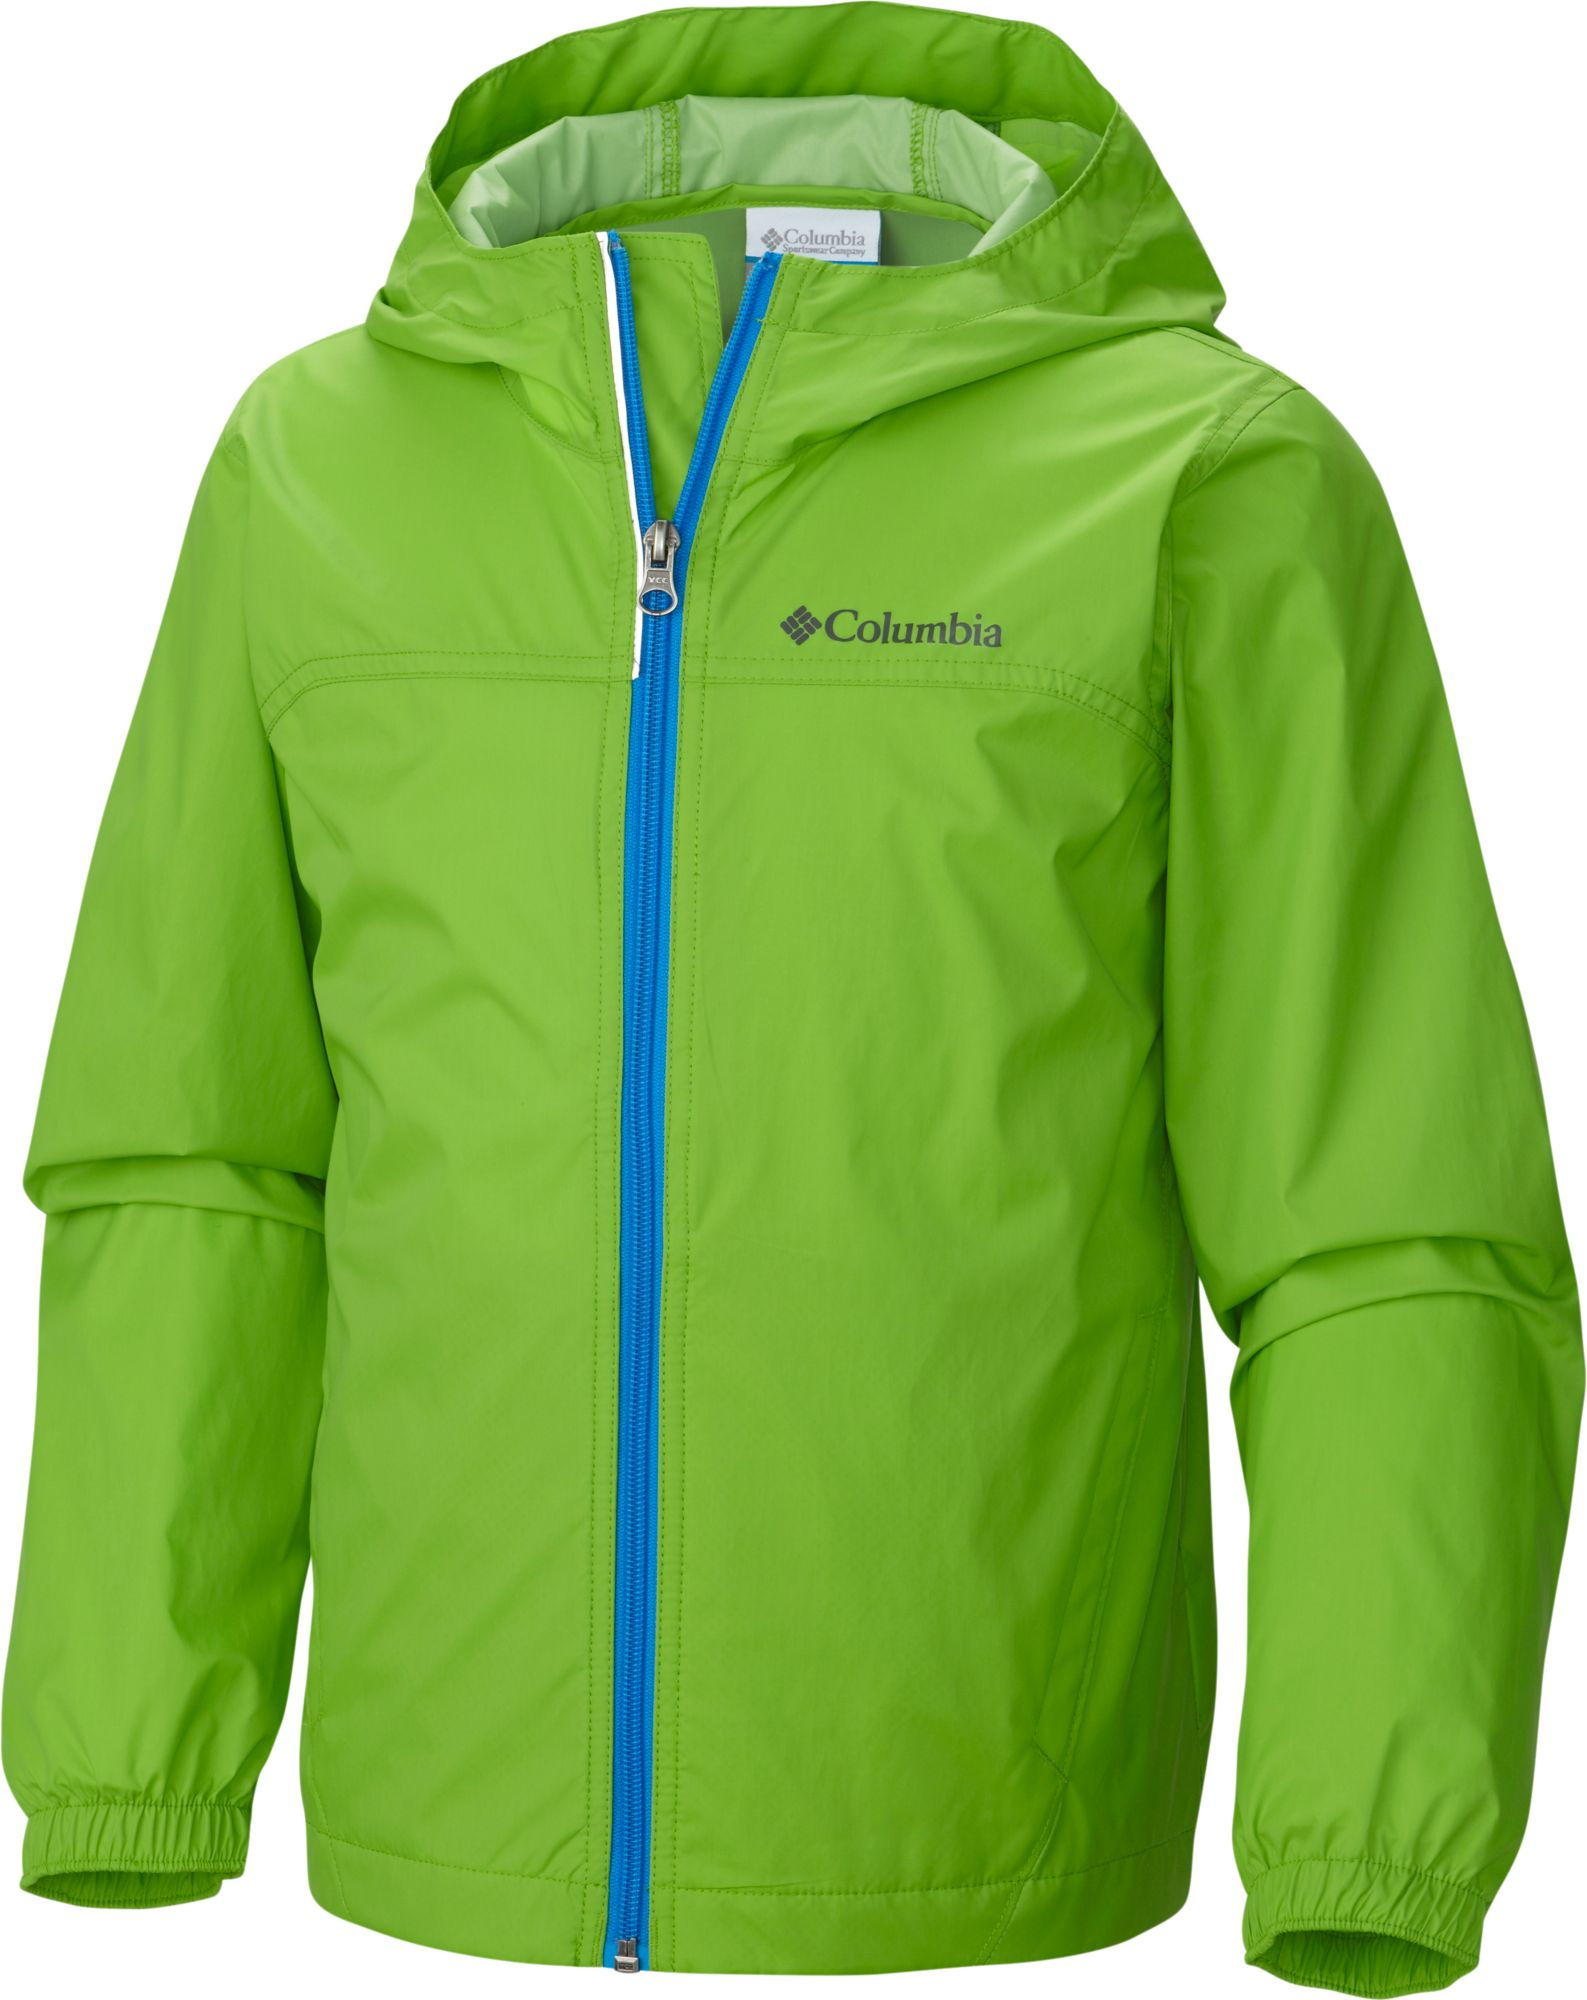 boys coats jackets kids dick s sporting goods #2: 15cmbttdbglnnkrrnapo cyber green is